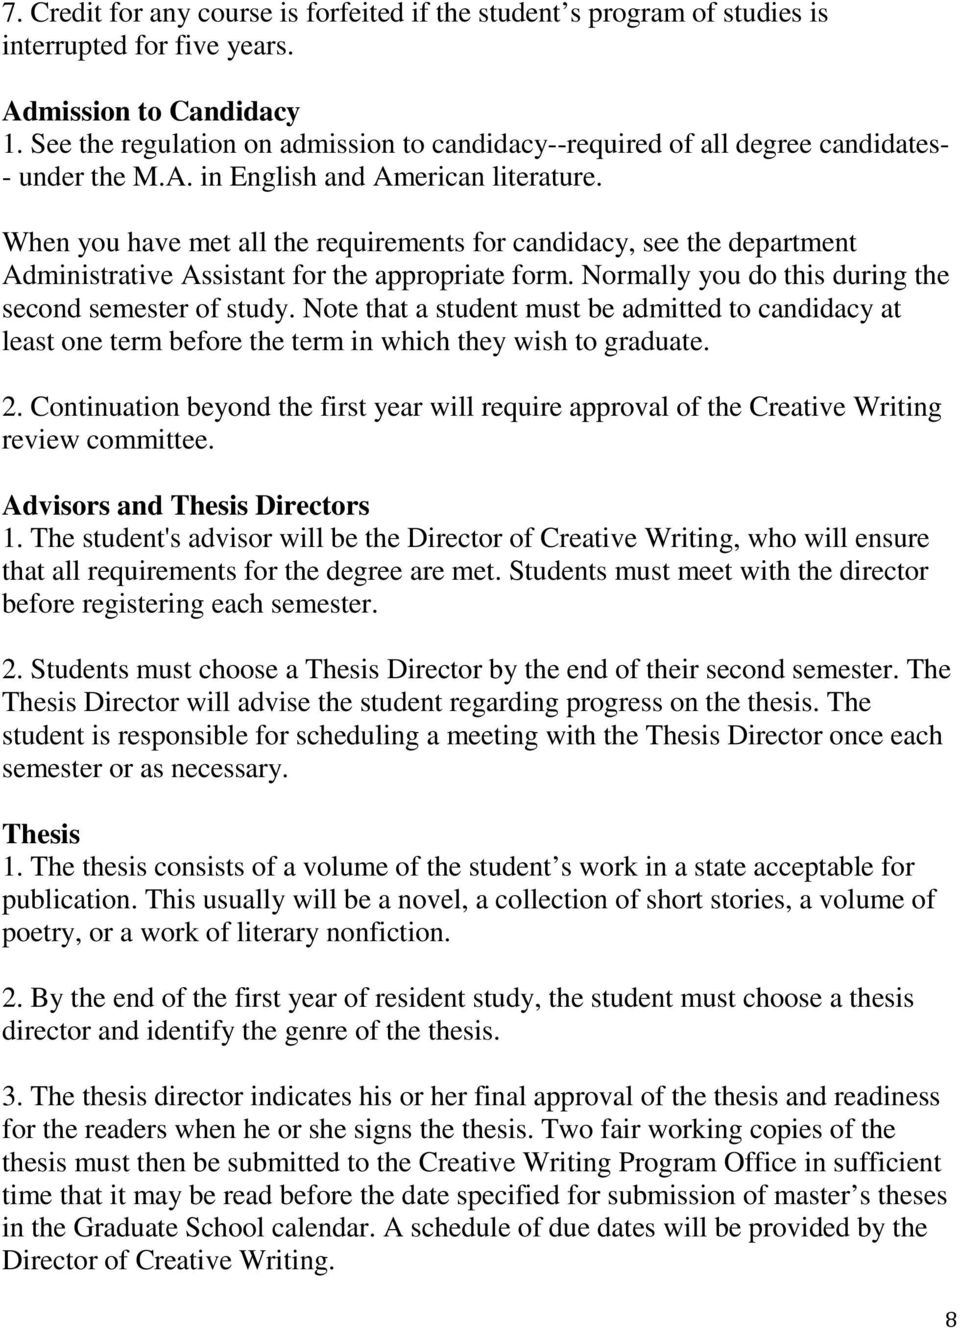 Literary thesis statement worksheet image 4